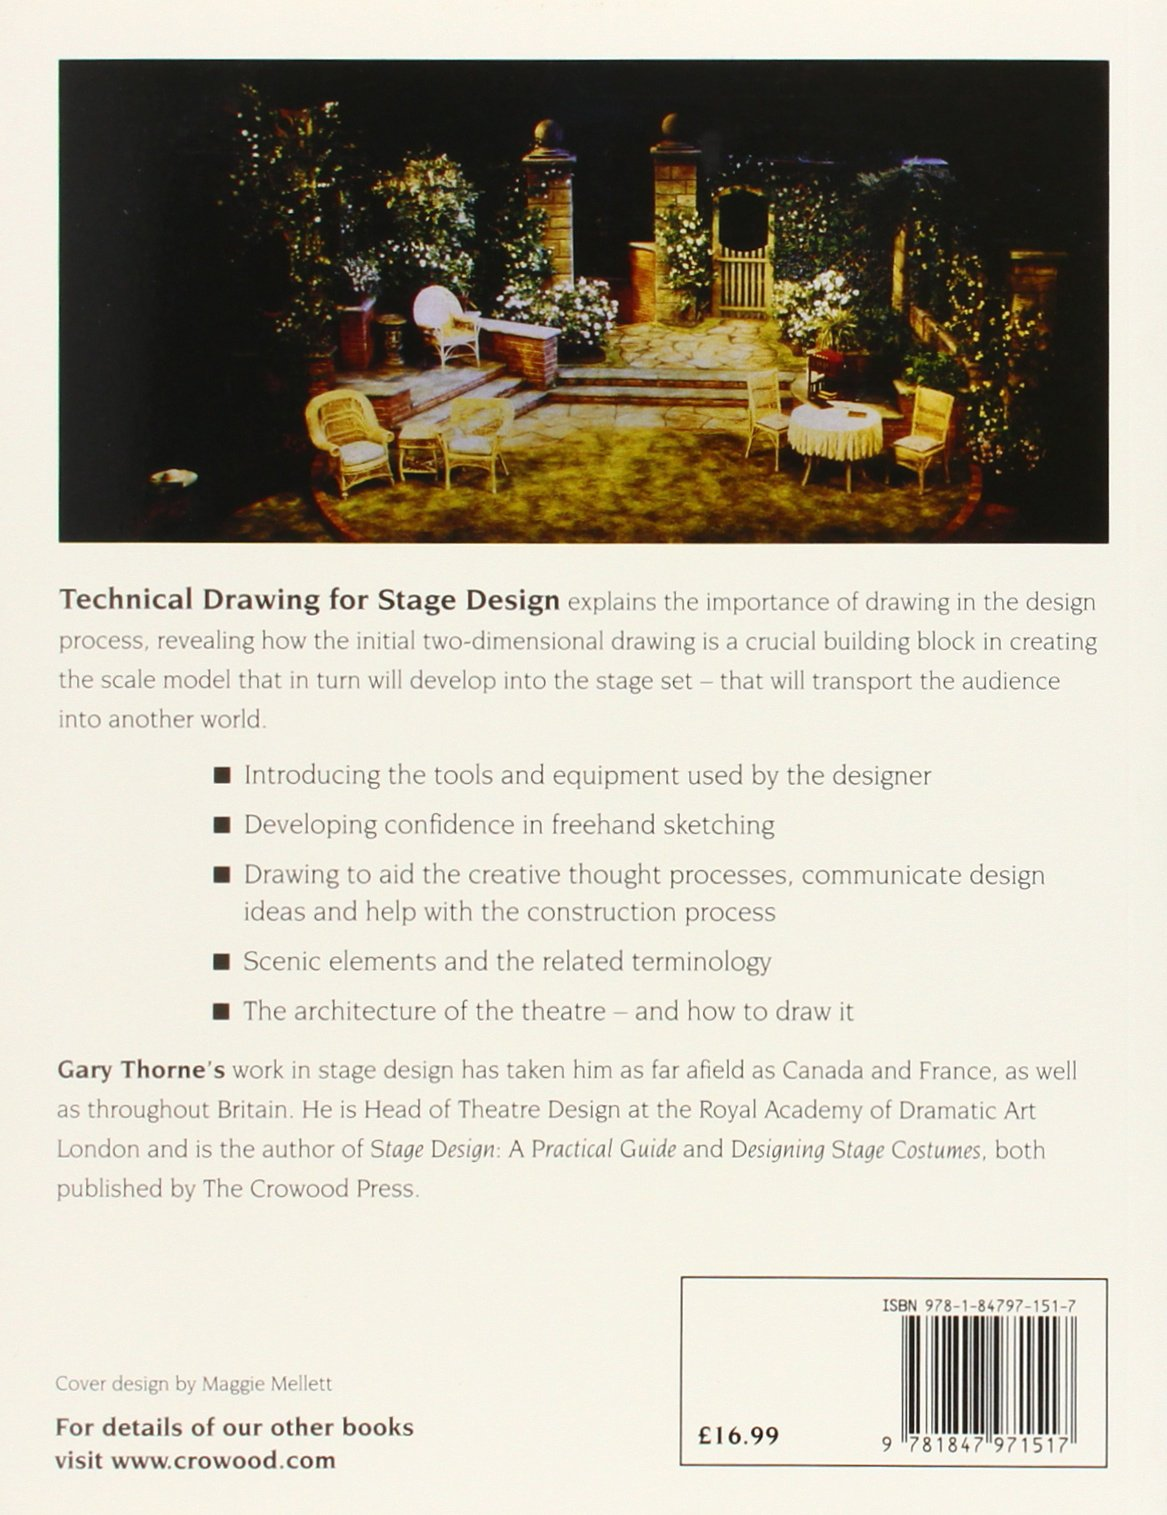 Technical Drawing For Stage Design Gary Thorne 9781847971517 Amazon Books